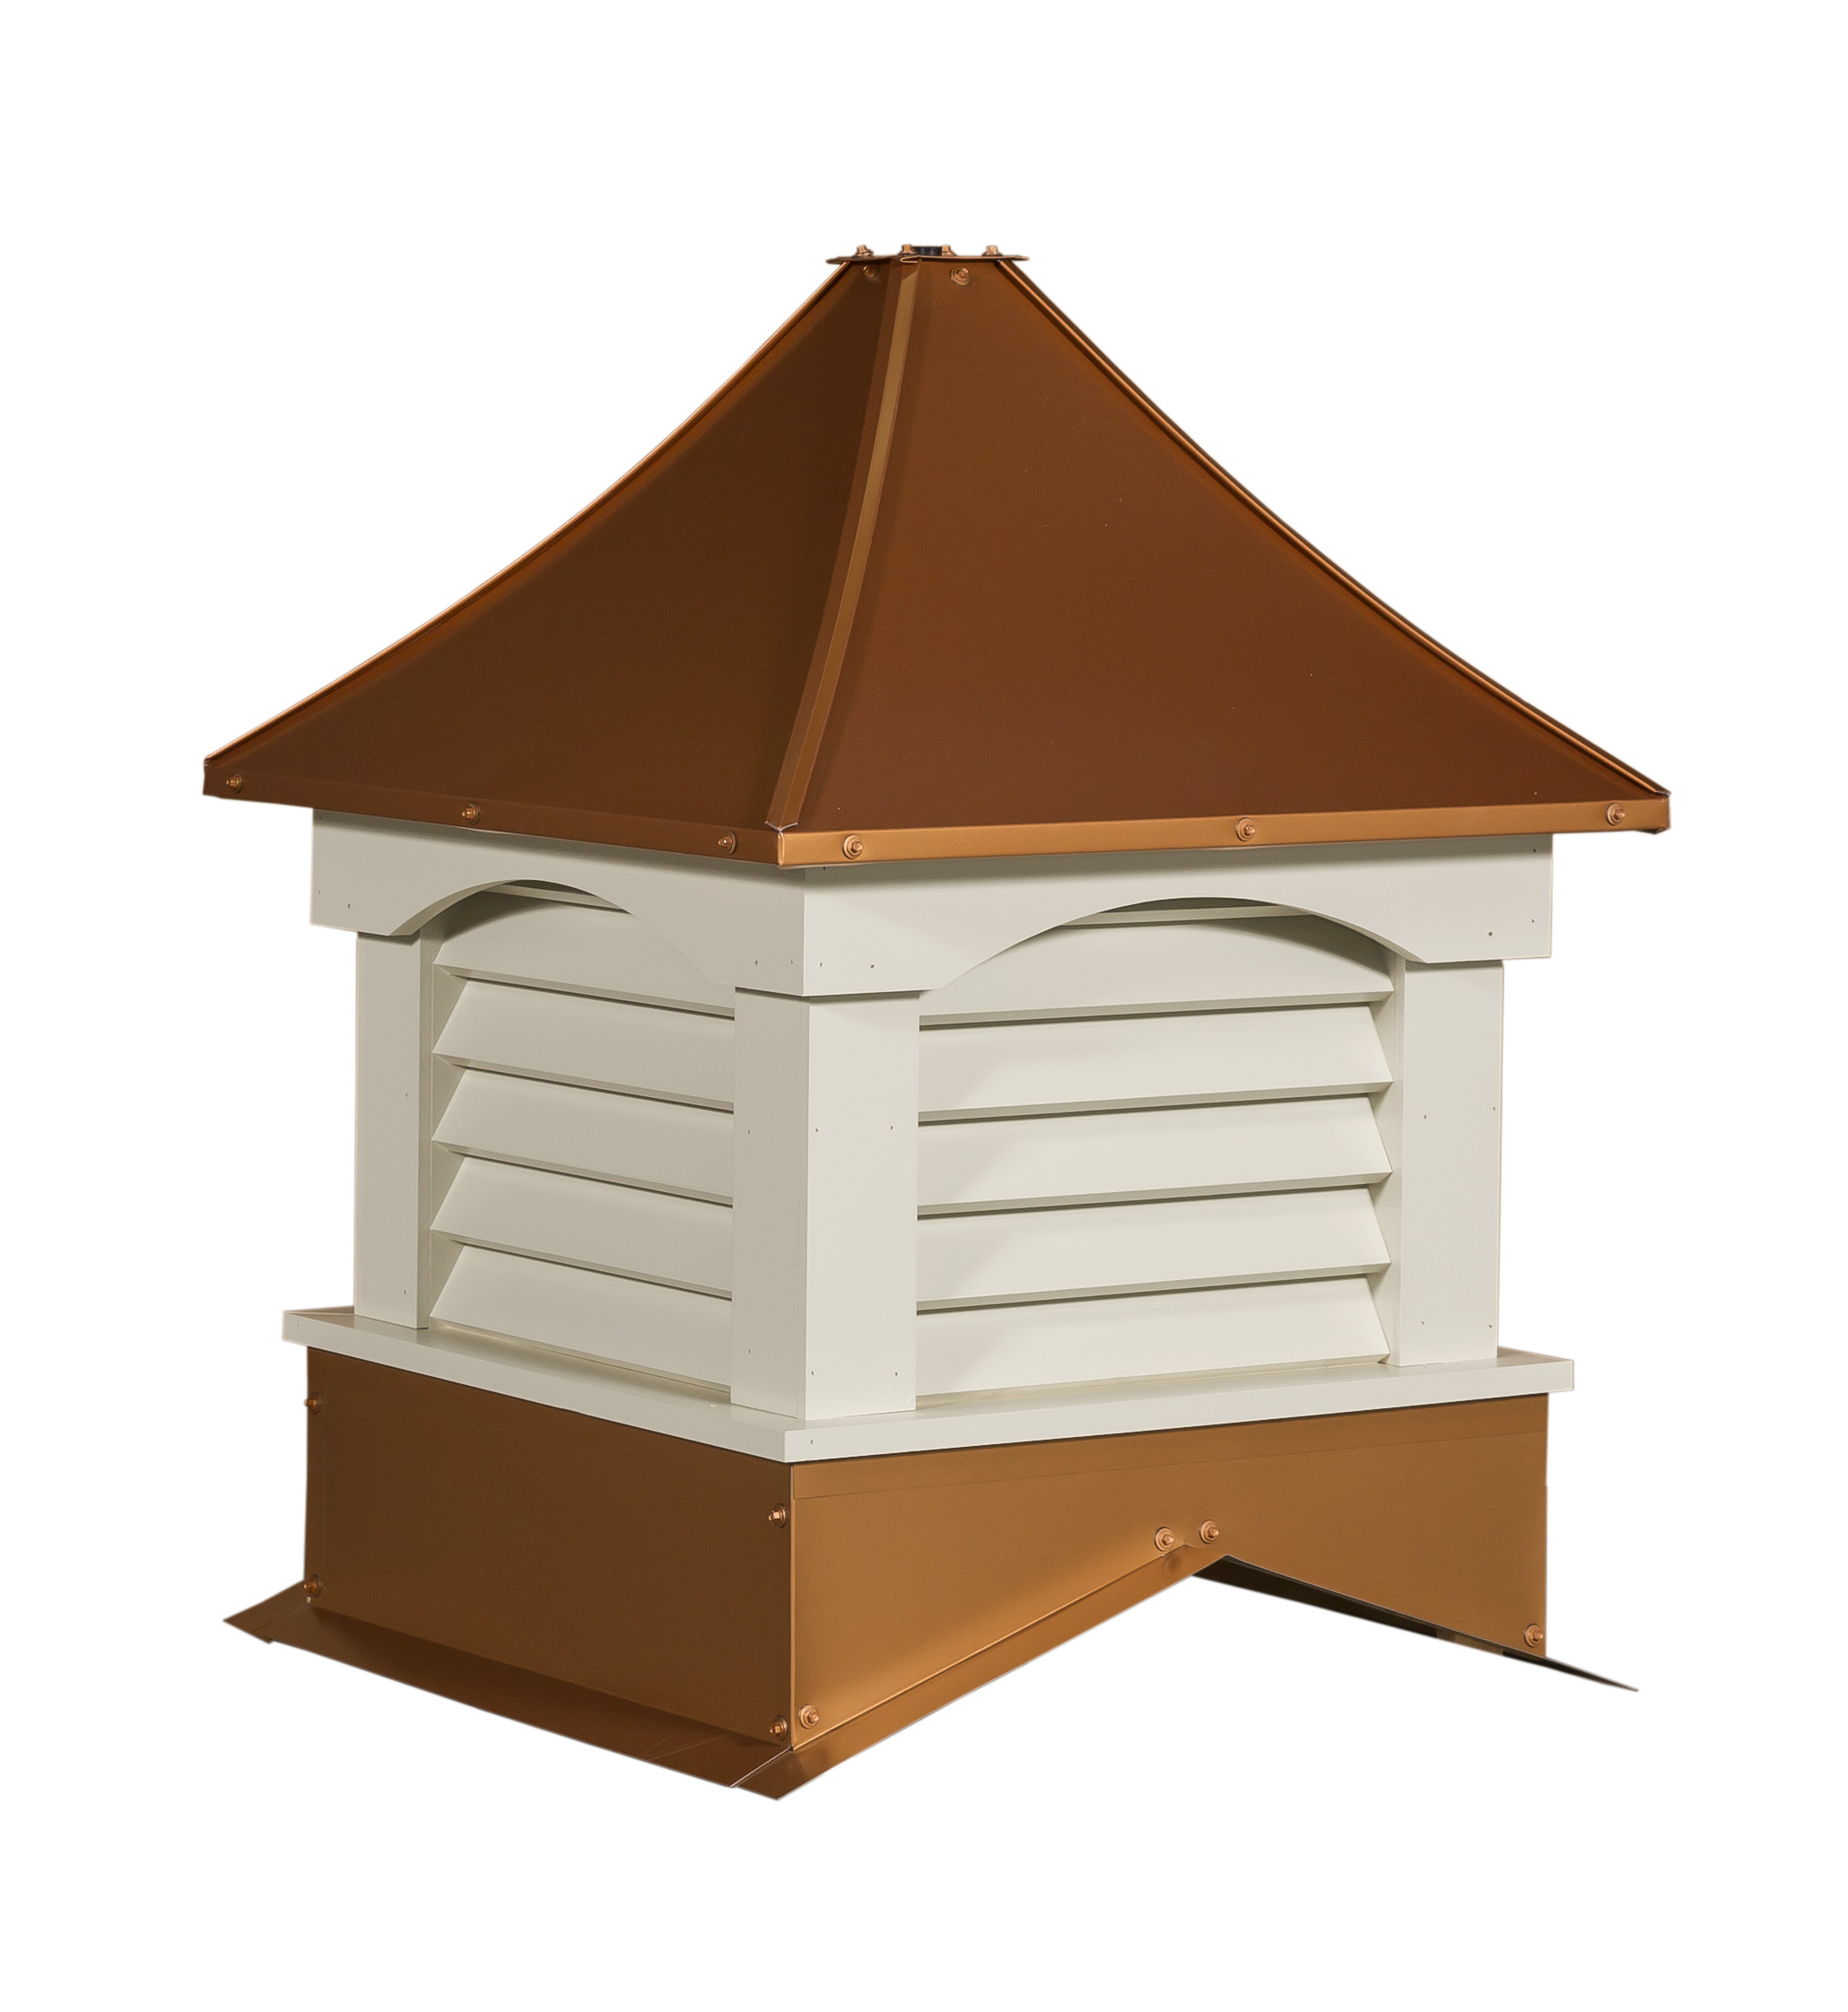 ARCHED FRANKLIN CUPOLAS (S6FV-A)